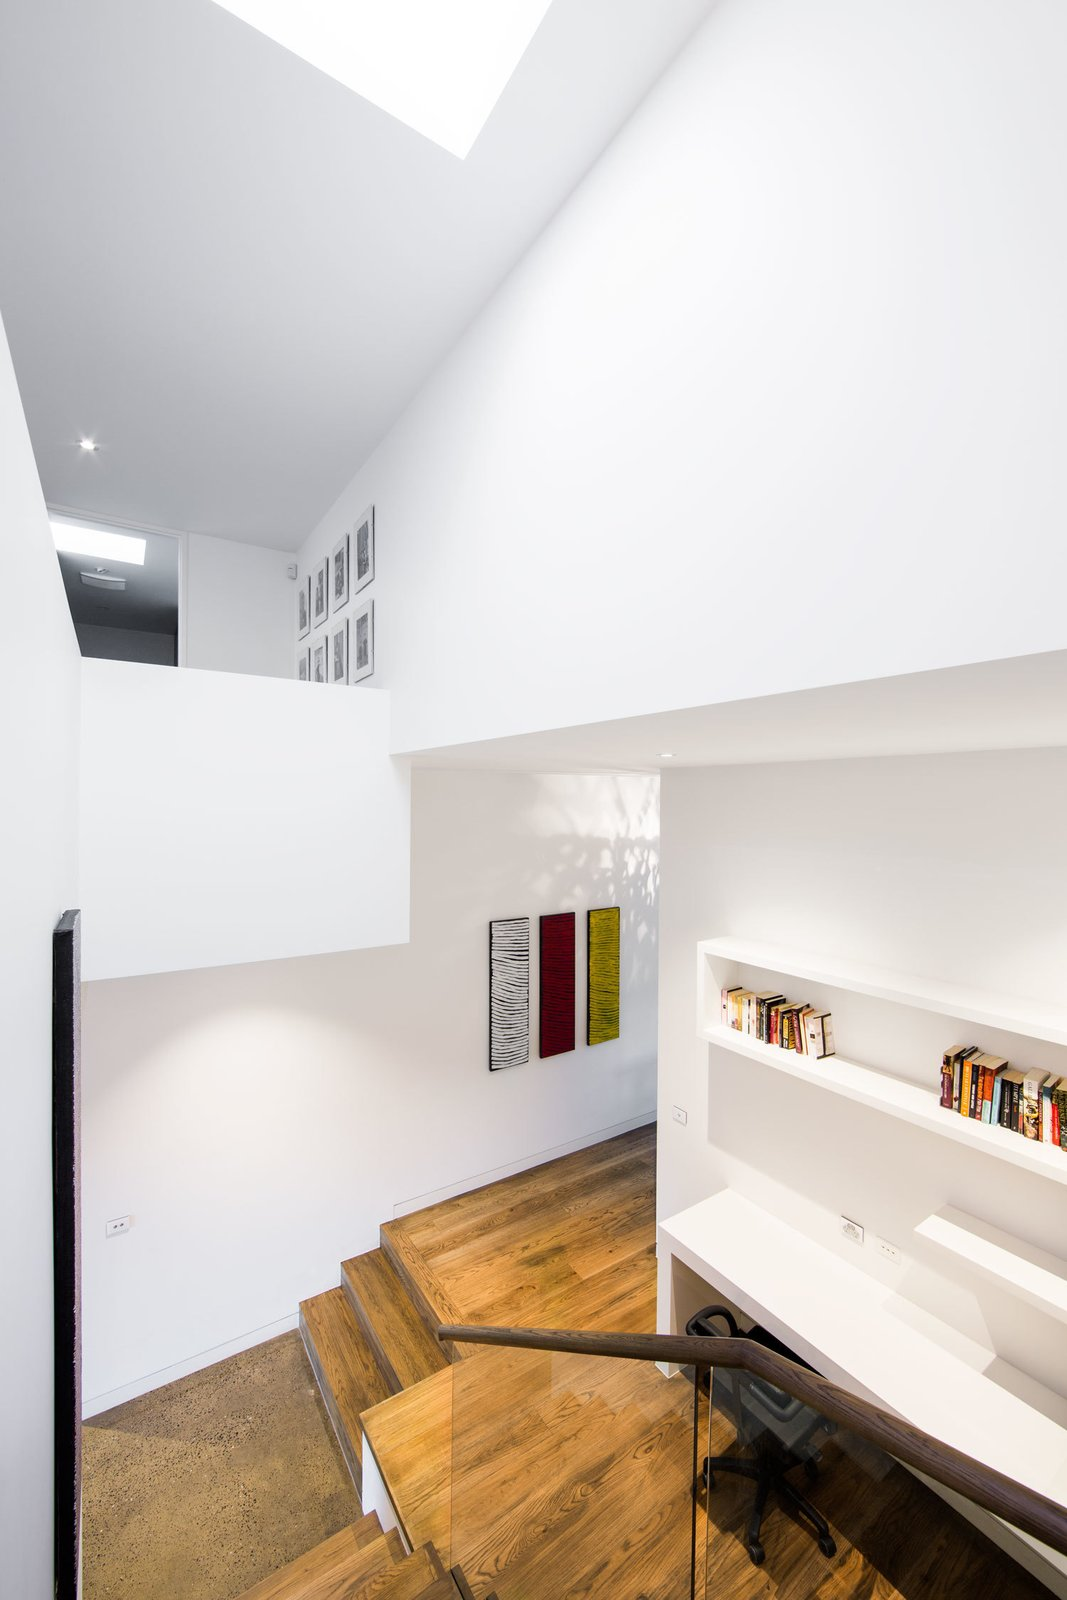 This double-height stairwell, just adjacent the kitchen, marks the transition from the historic building to the new renovation. A skylight pulls sunlight from above into the home office below. Tagged: Wood Tread, Wood Railing, Windows, and Skylight Window Type.  190+ Best Modern Staircase Ideas by Dwell from A Breezy Modern Addition Opens Up a Historic Melbourne Home